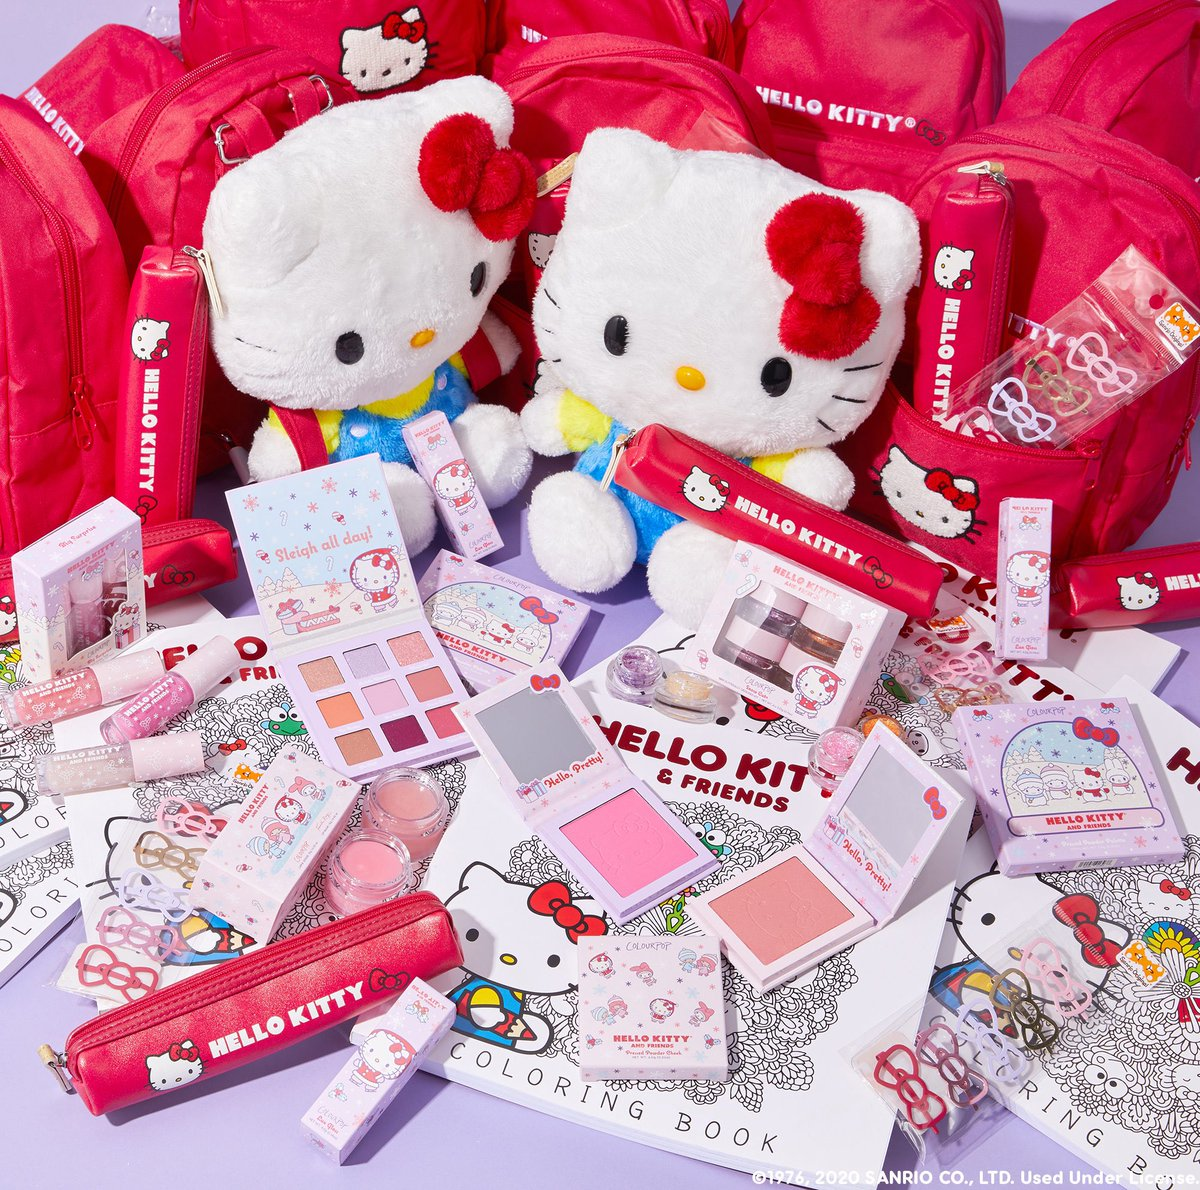 ✨HELLO KITTY AND FRIENDS X COLOURPOP ✨   Let's celebrate our second @hellokitty collaboration with a MAJOR #giveaway! Win a the entire collection + a backpack, plush, pencil case, and MORE!  To Enter: ✨Like & RT ✨Follow @colourpopco ✨reply w/ #hellokittyxcolourpop